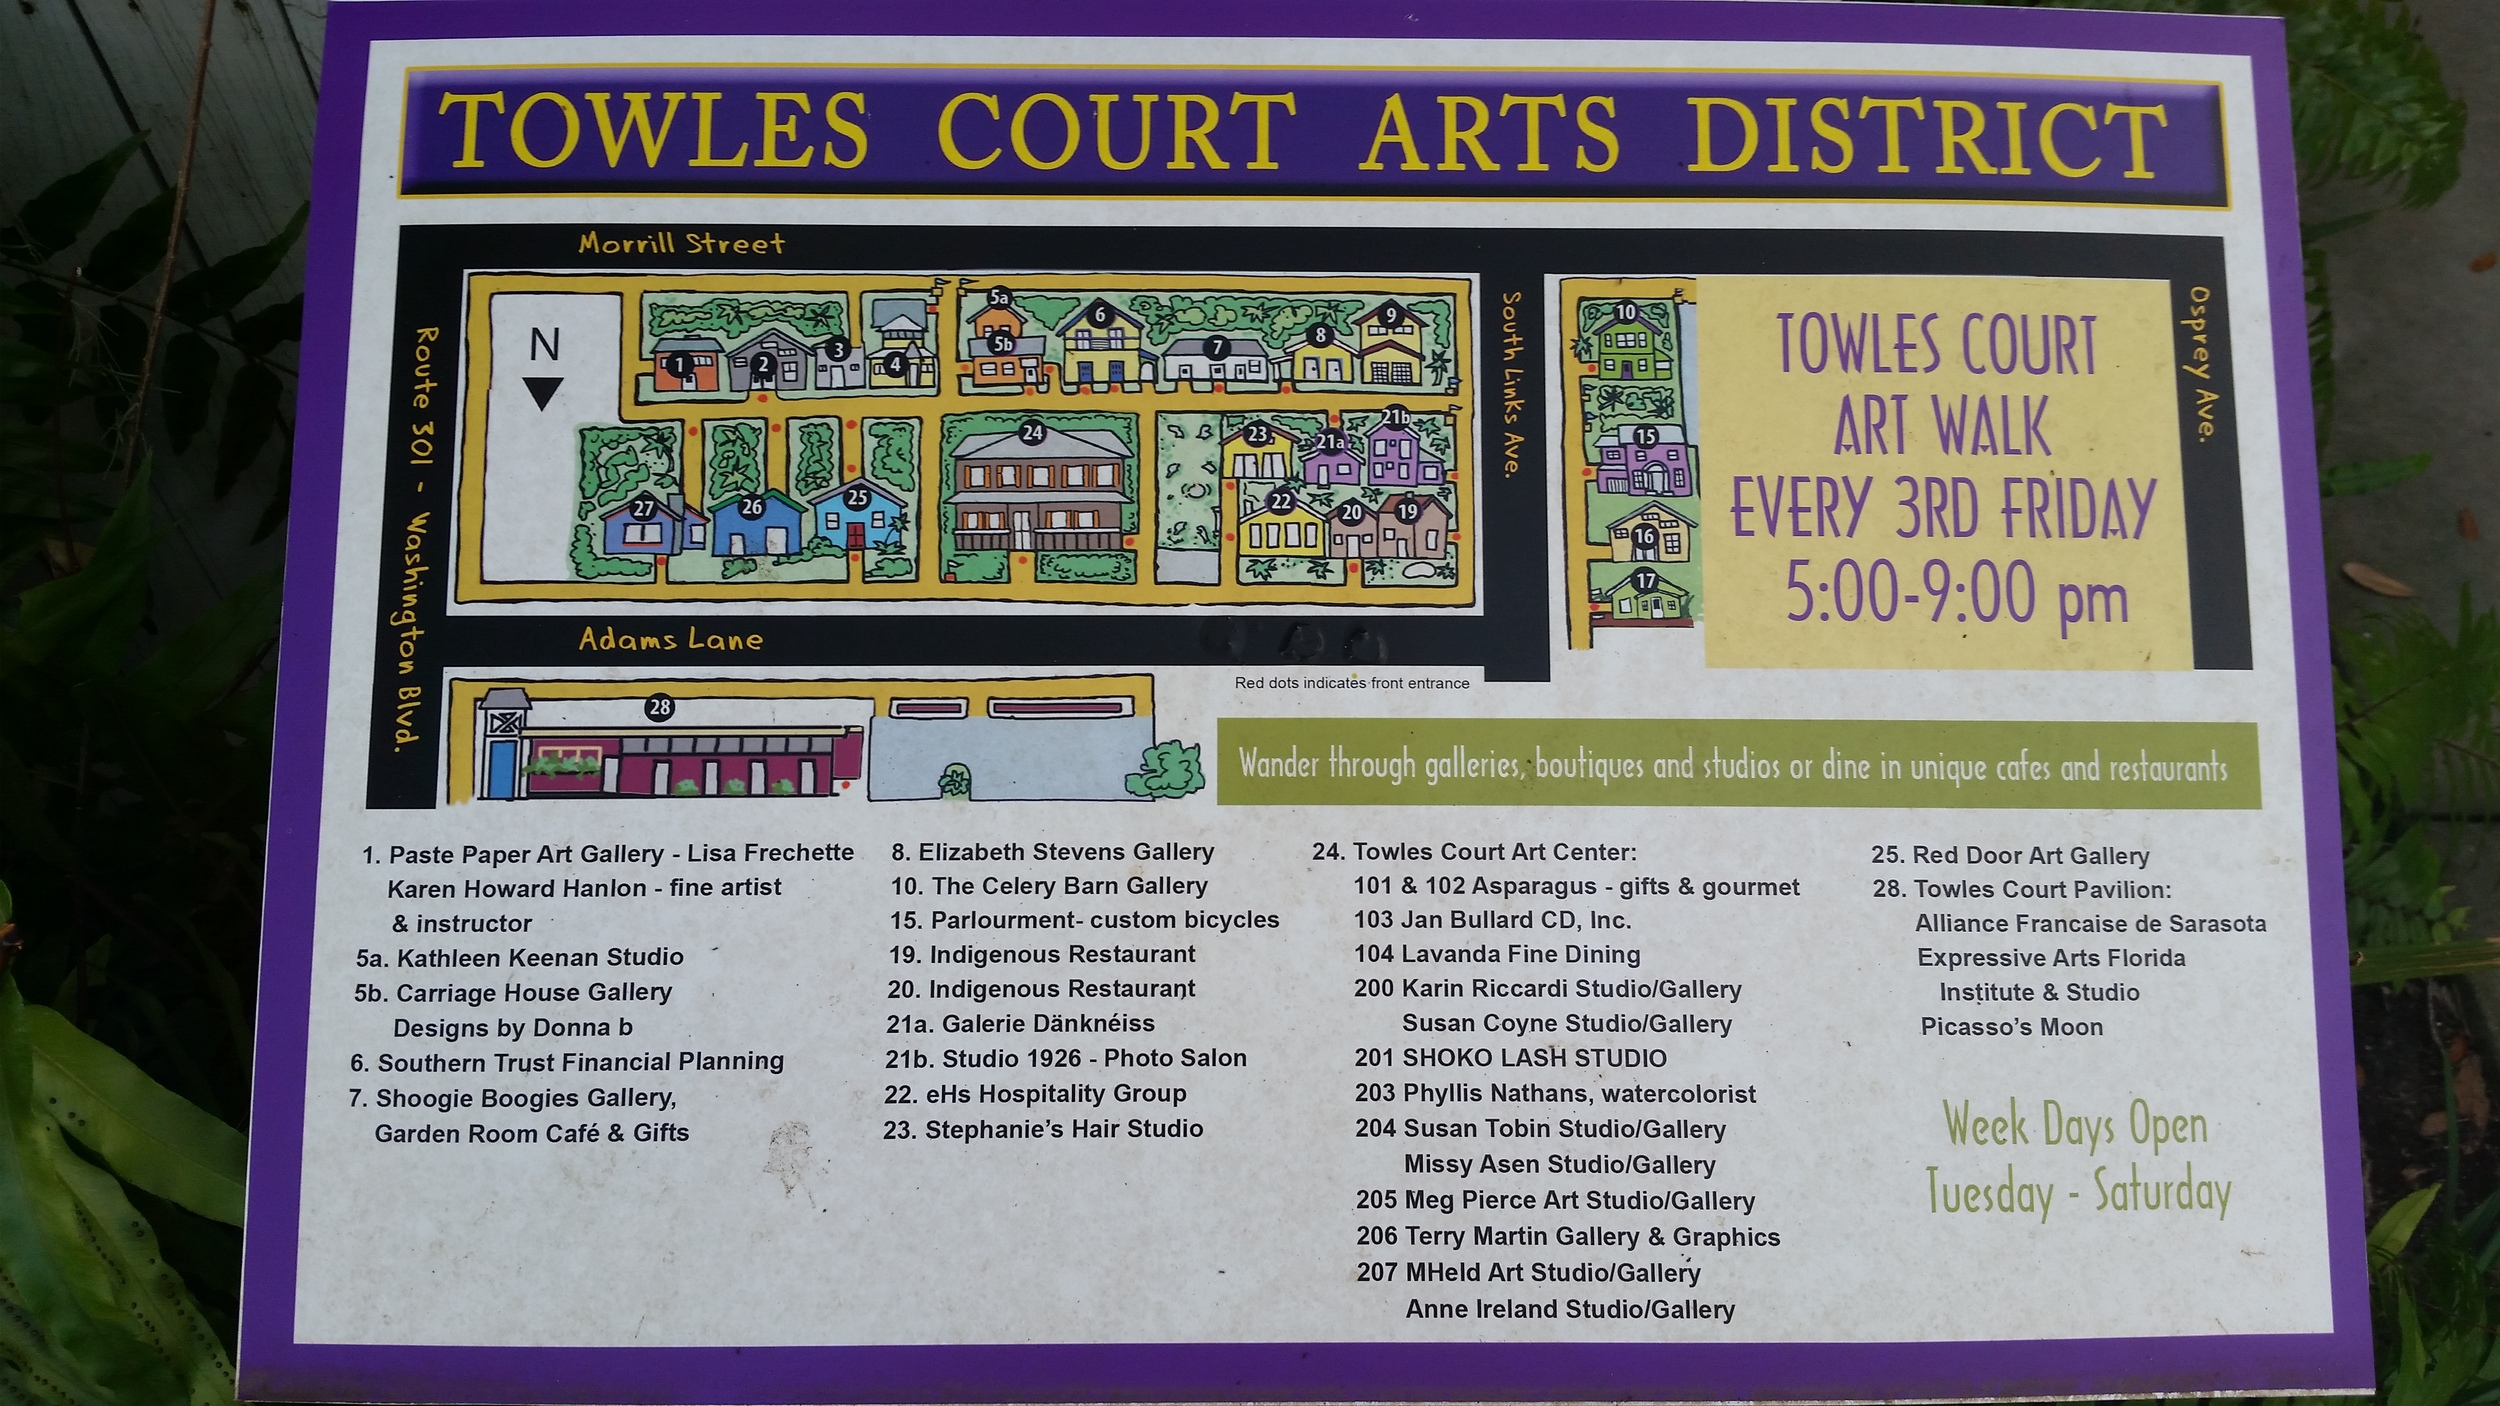 A map of the district posted near one of the entrances. The yellow paths are all pedestrian-only.